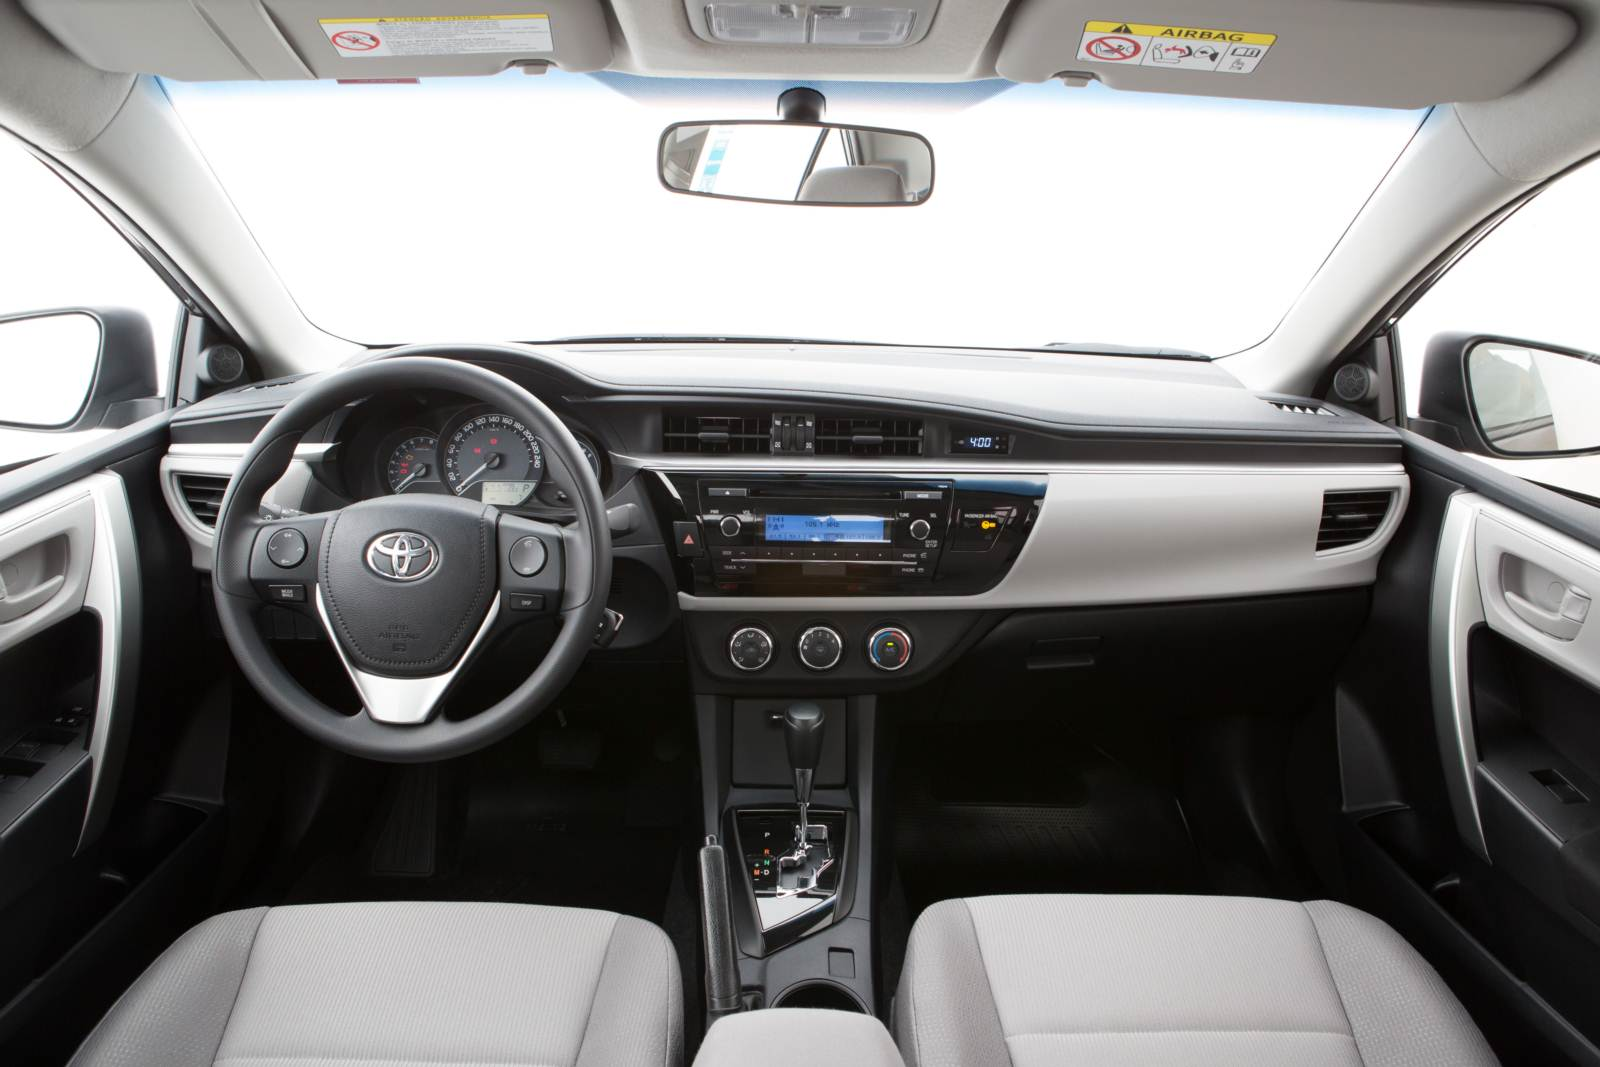 toyota corolla gli 2015 new model shape interior price in pakistan. Black Bedroom Furniture Sets. Home Design Ideas